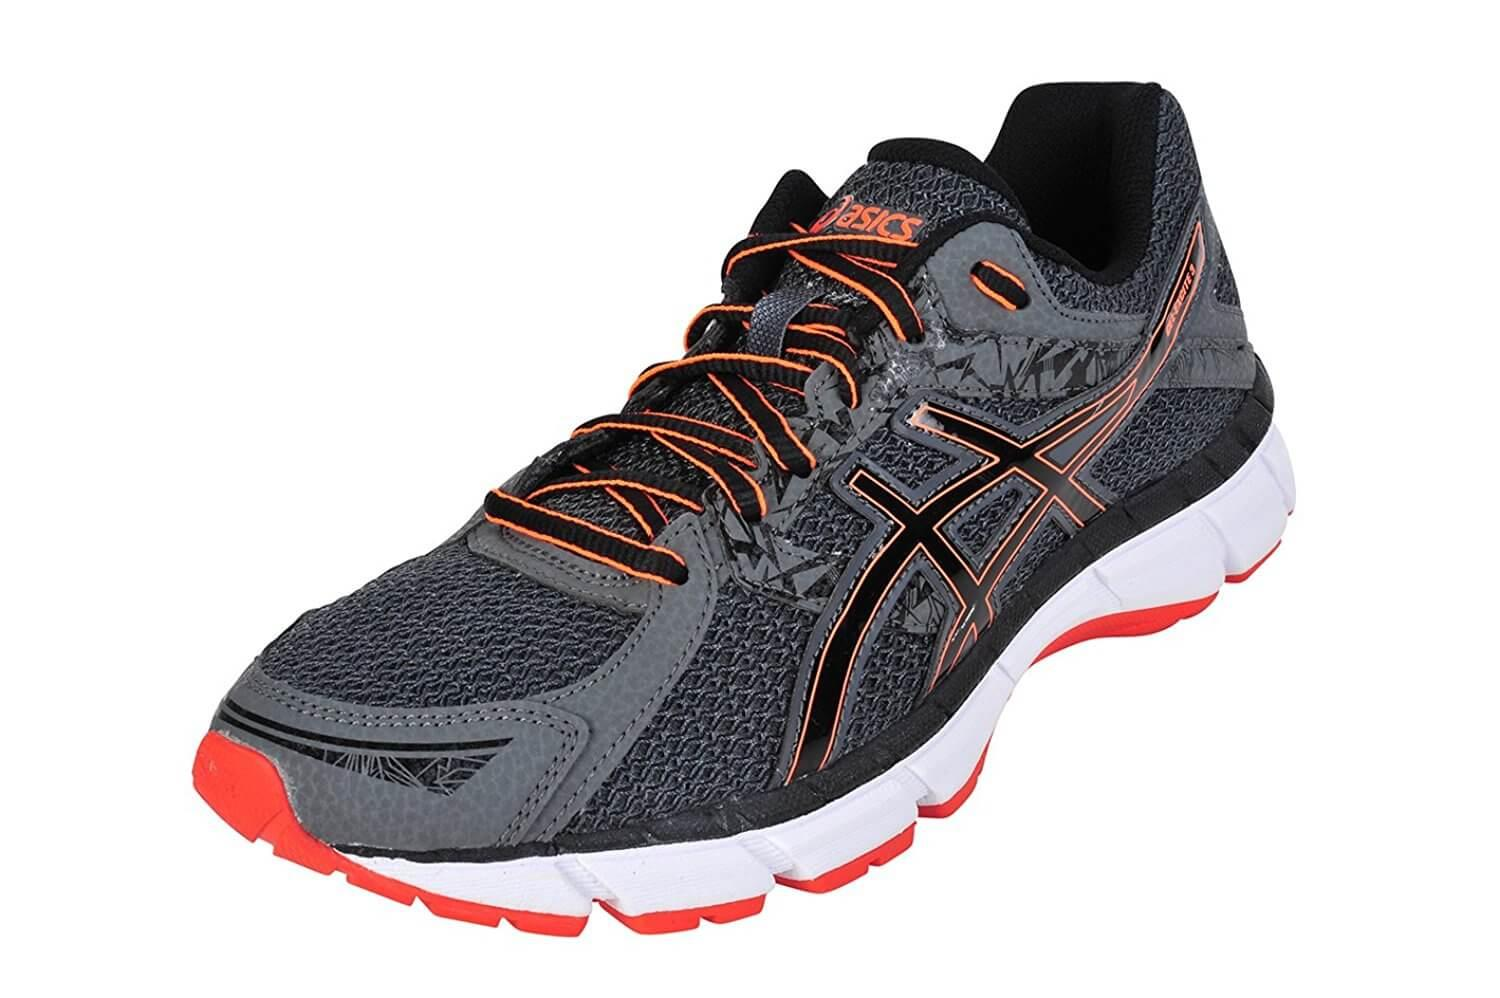 a7f1adcd4 Asics Gel Excite 3 Reviewed - To Buy or Not in May 2019